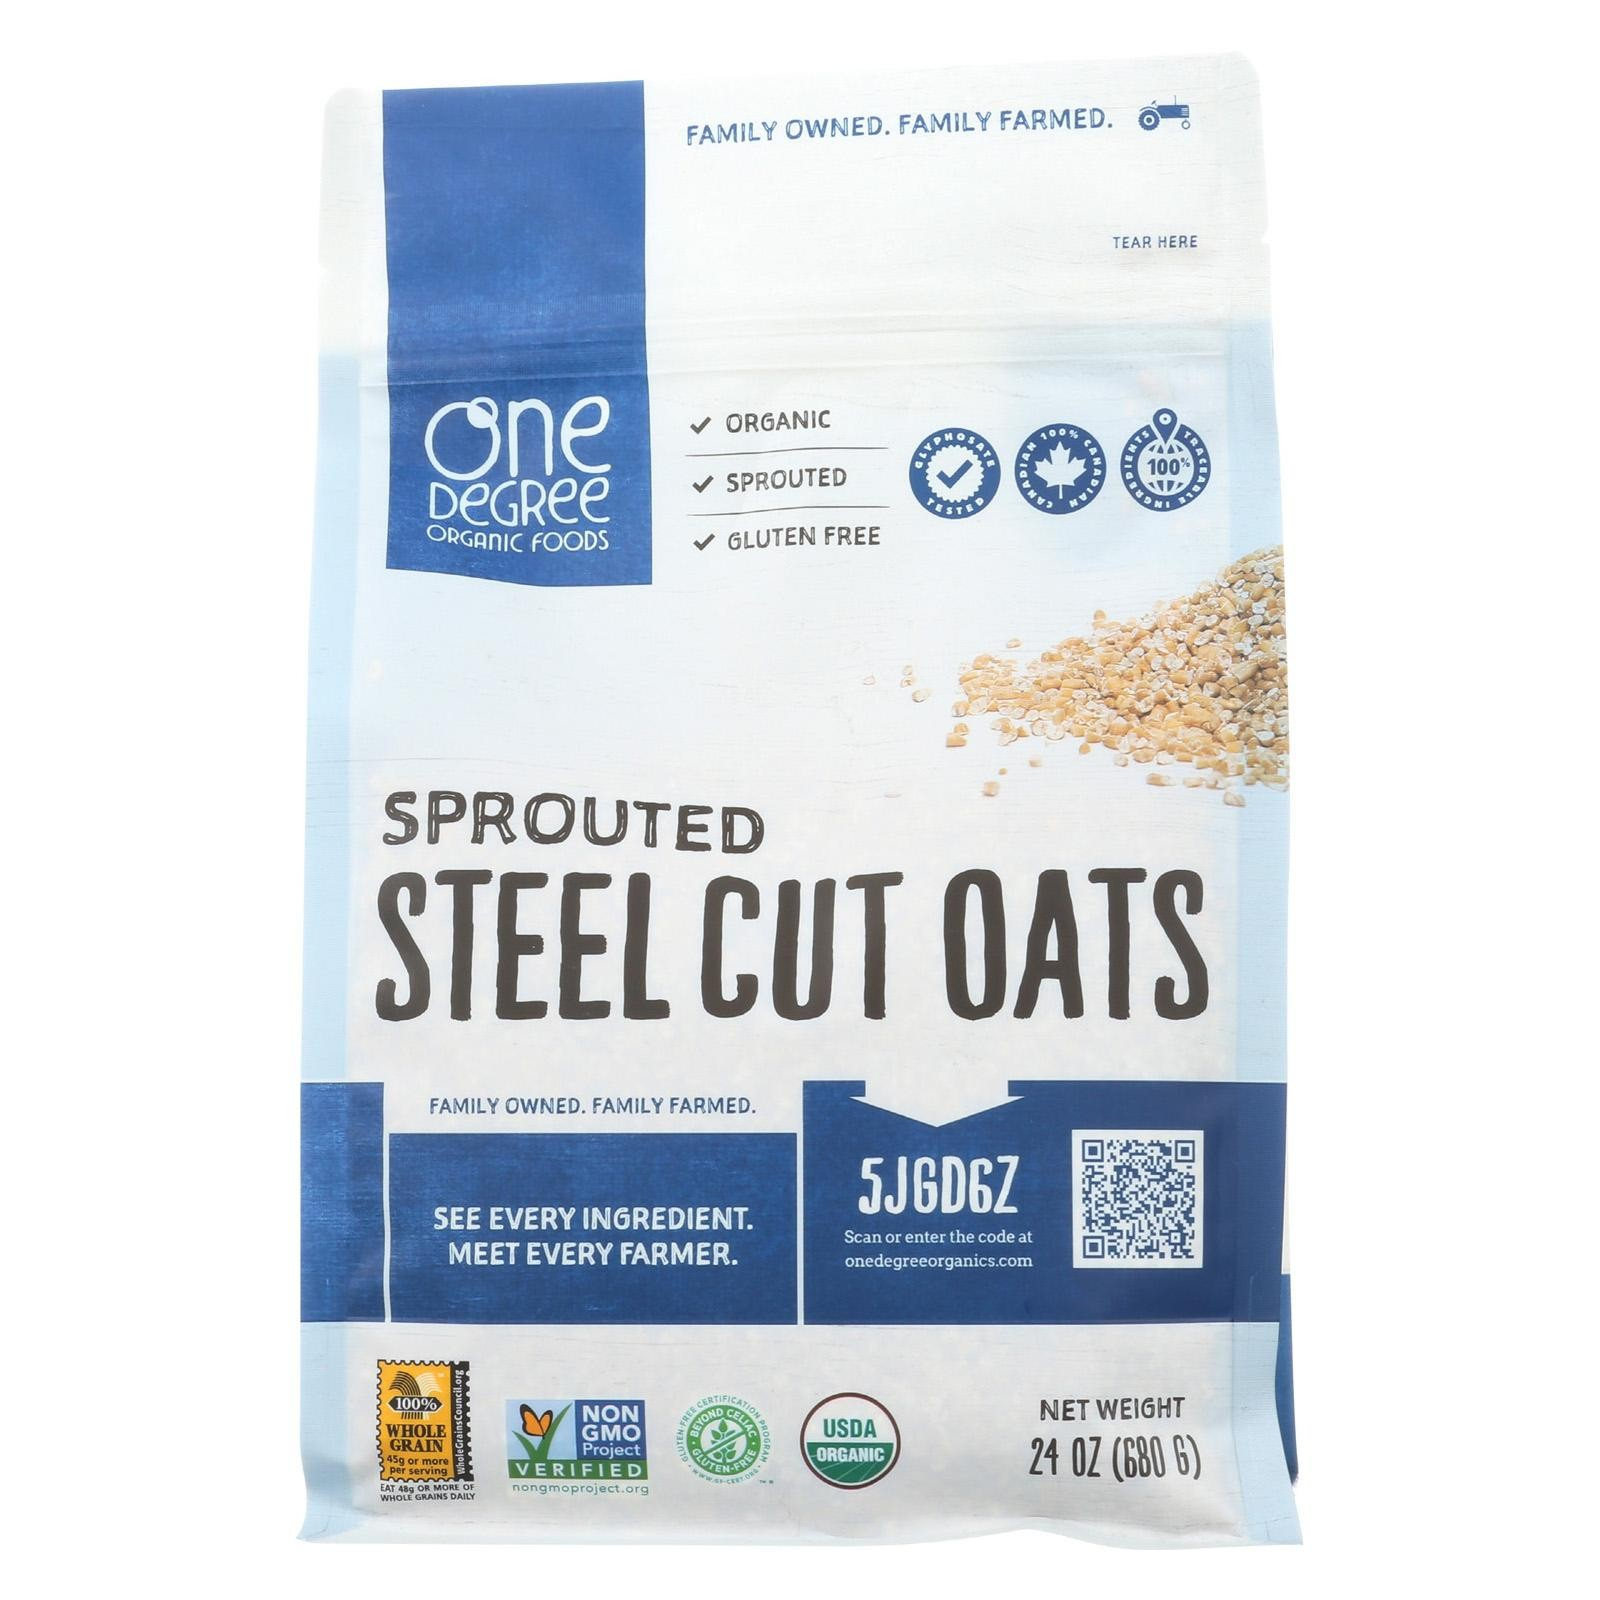 One Degree Organic Foods Organic Steel Cut Oats – Sprouted – Pack of 4 – 24 Oz